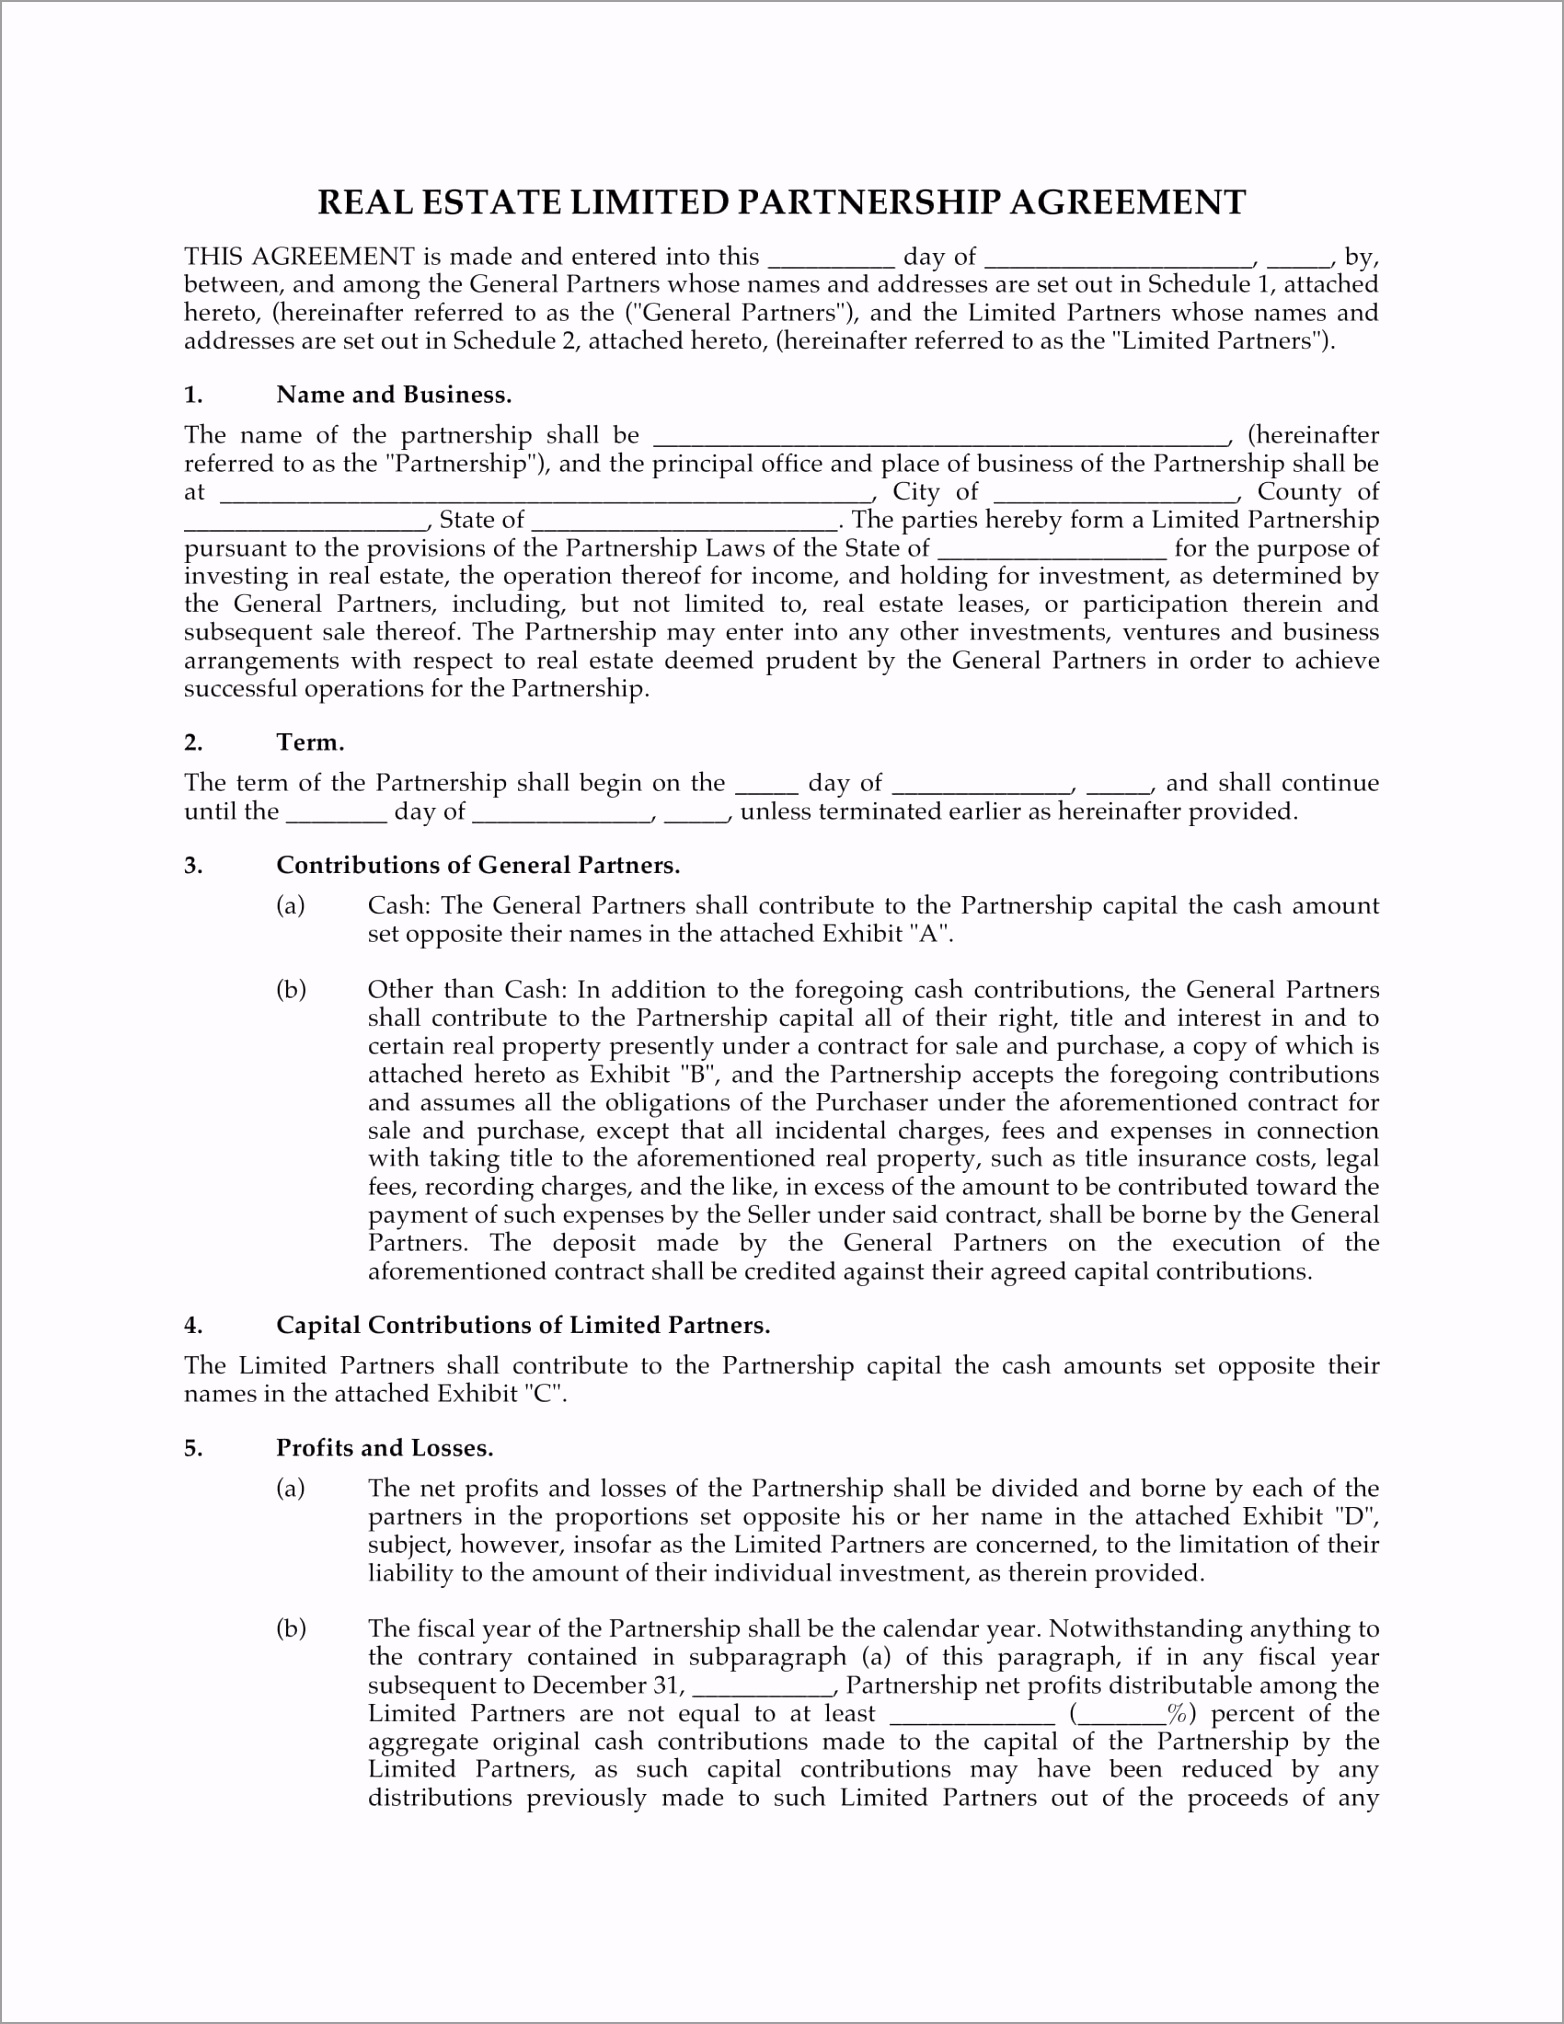 Real Estate Limited Partnership Agreement Example iioie